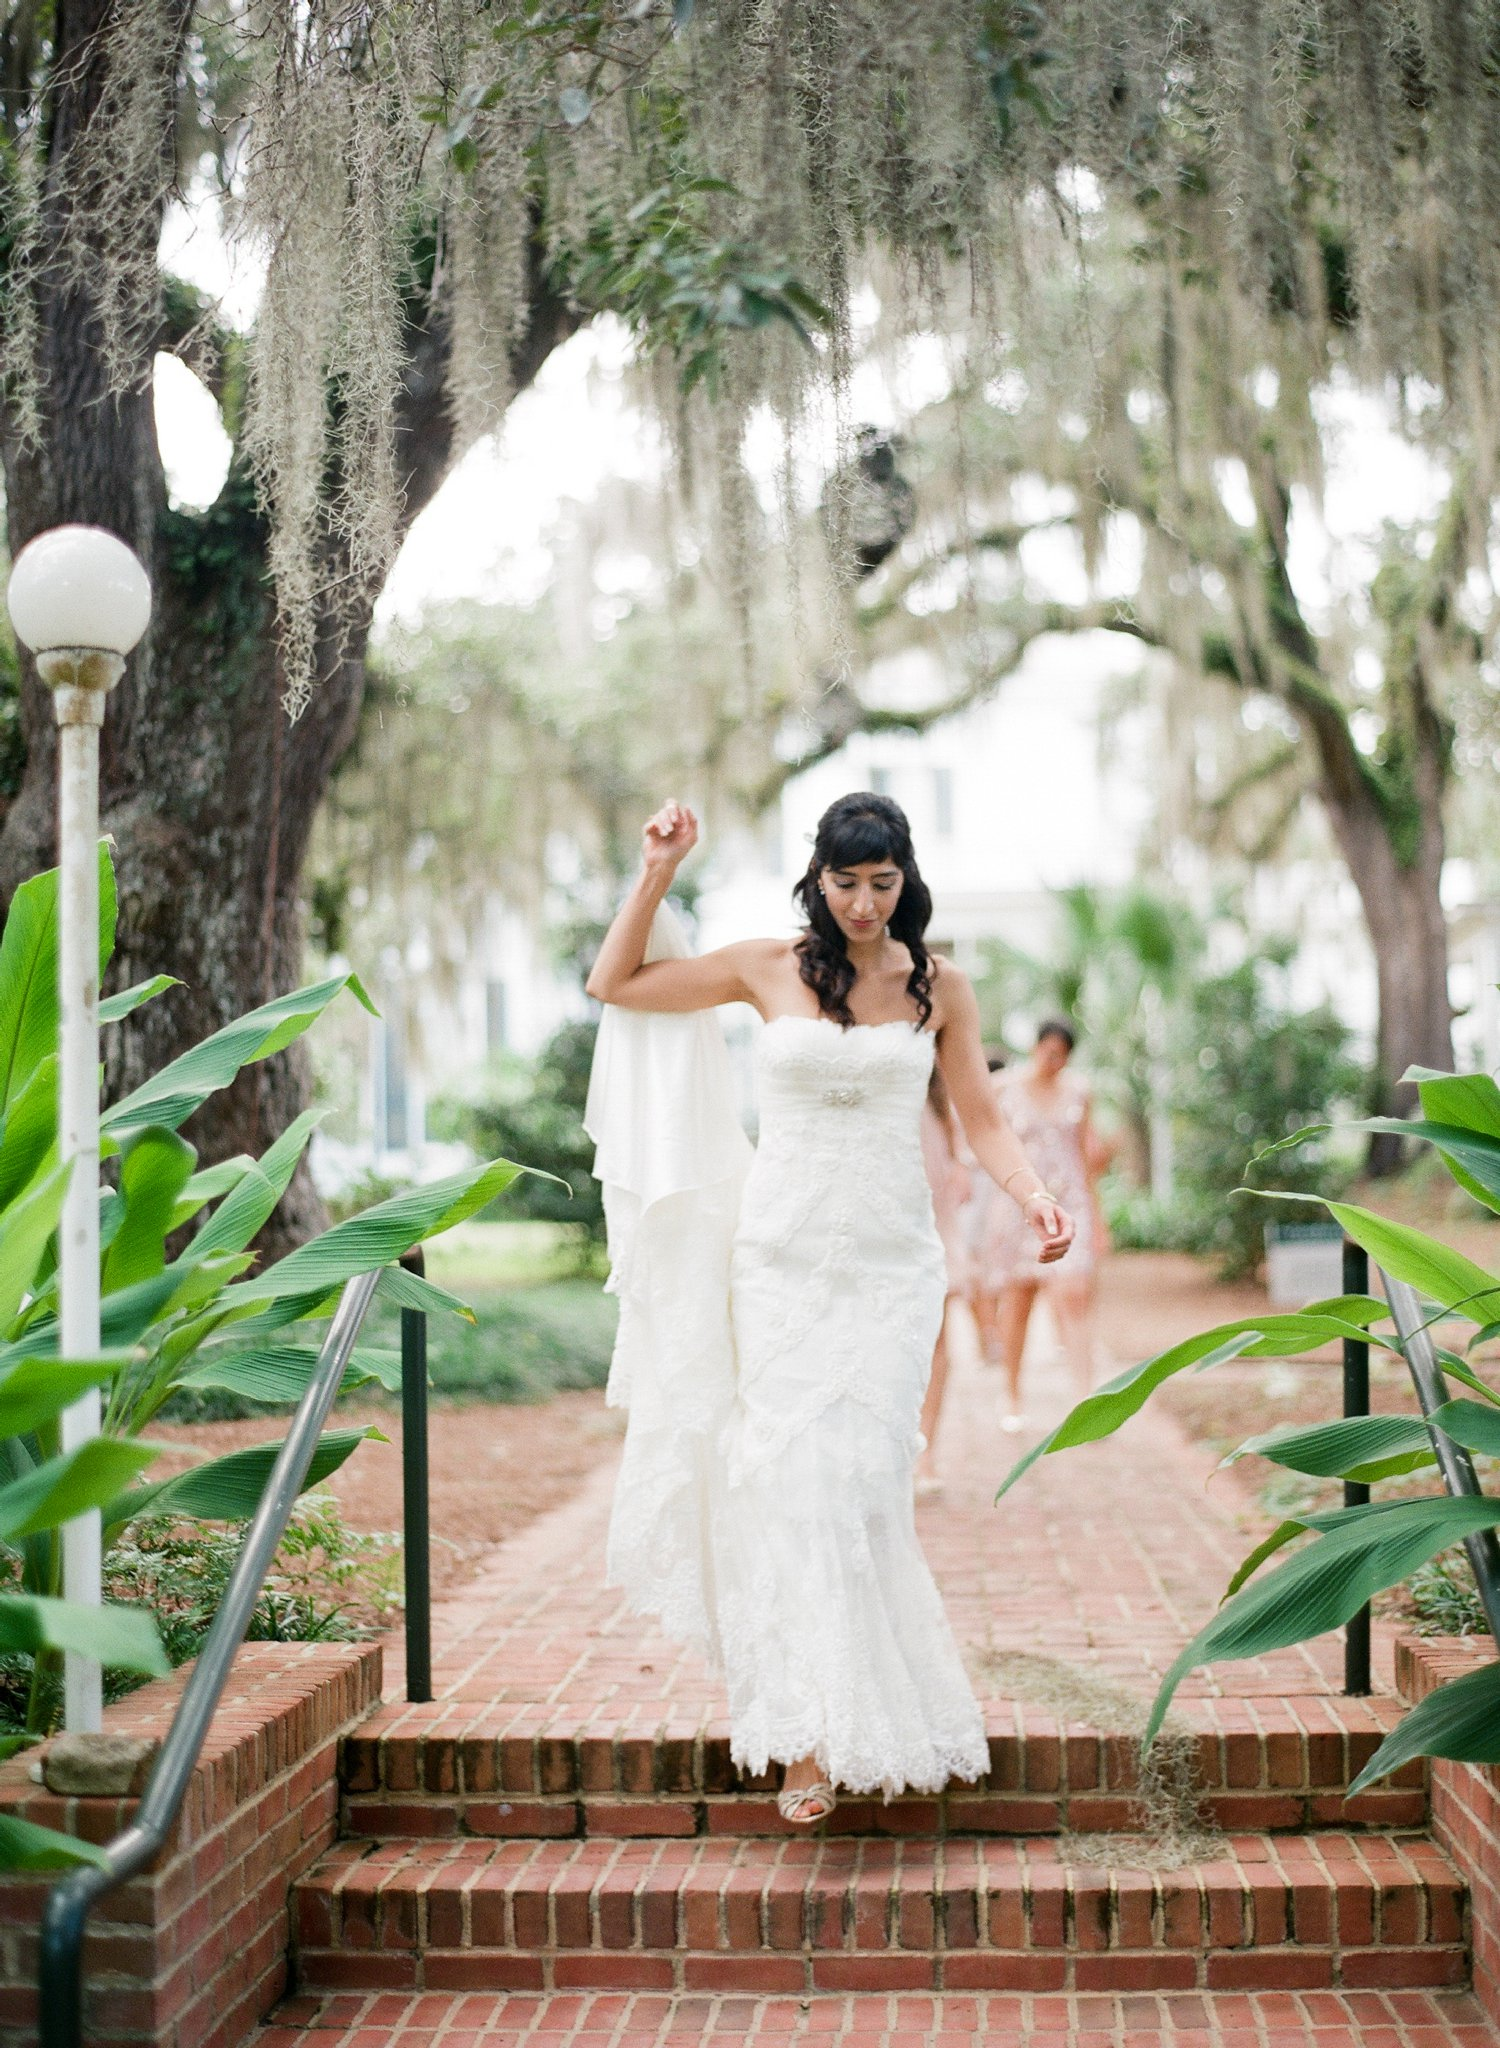 Persian-Jewish wedding goodwood wedding photographer tallahassee florida shannon griffin photography_0072.jpg